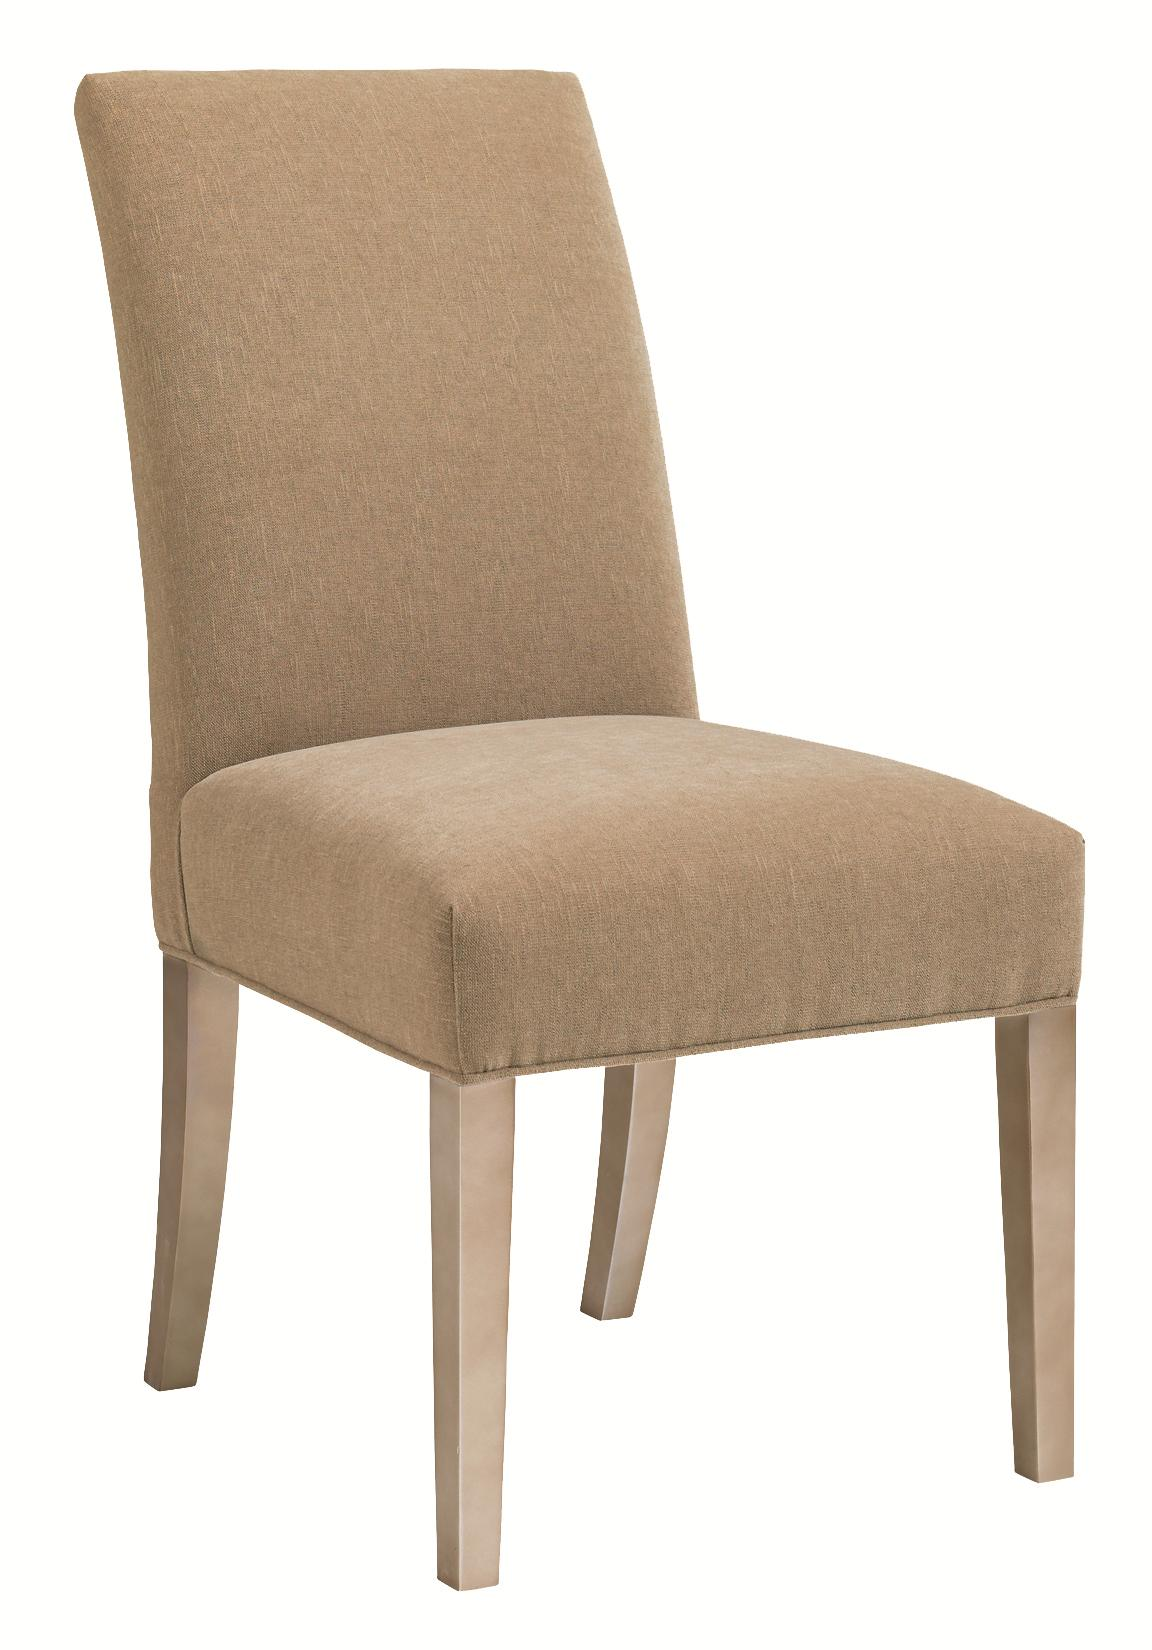 Modern Artisan Artisans Chair by Caracole at Baer's Furniture